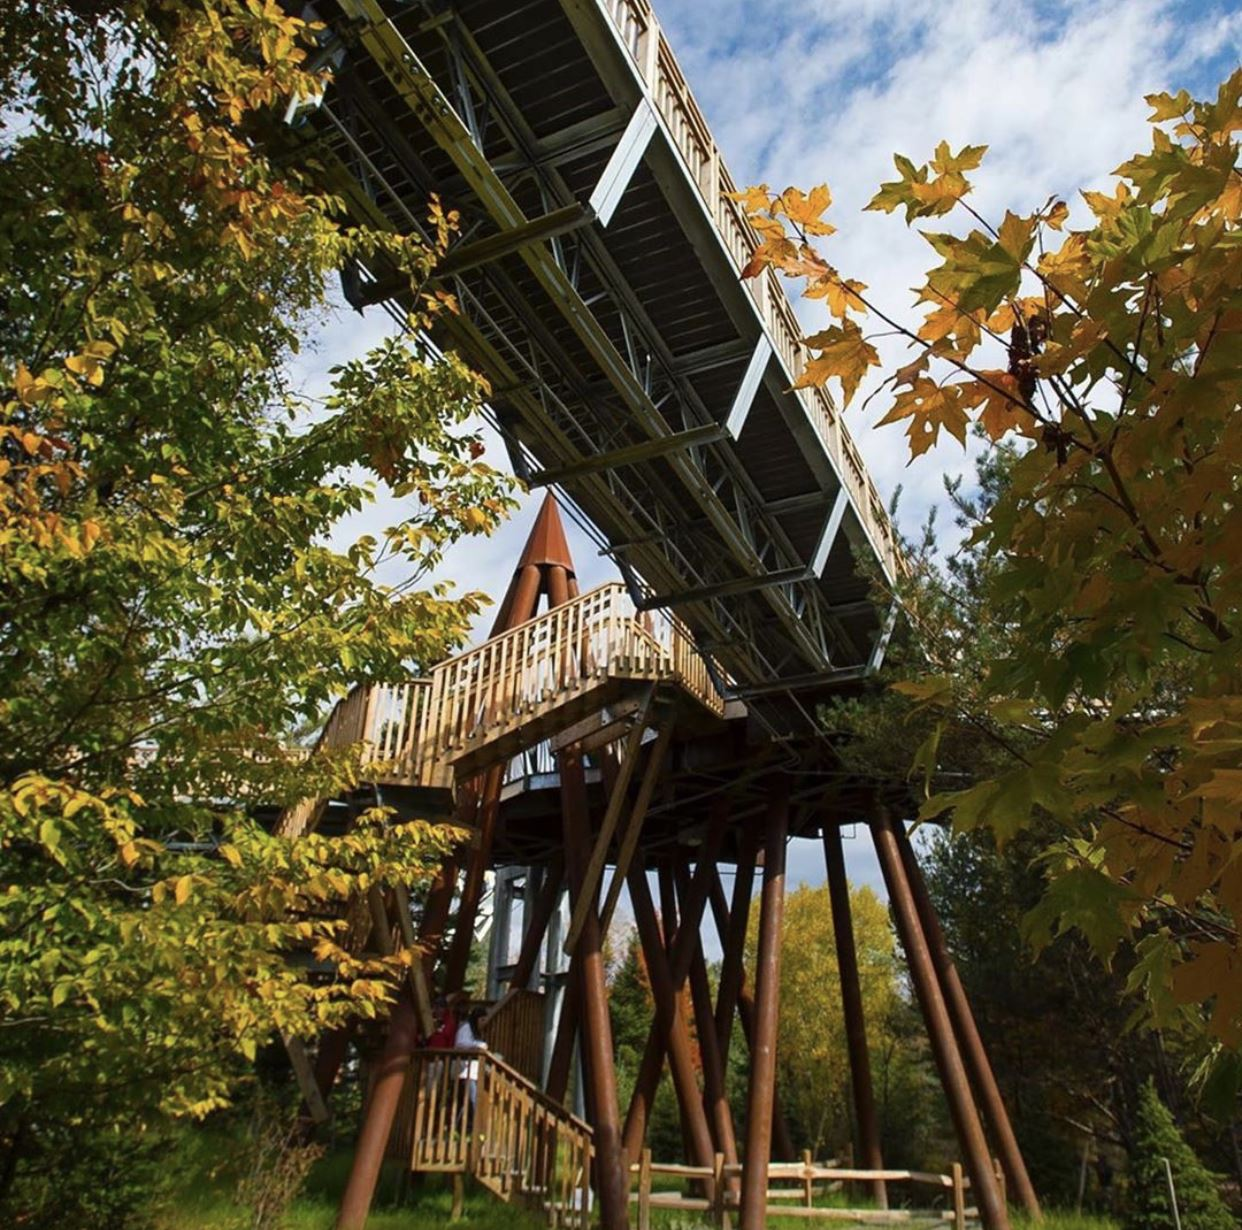 Looking at the @iloveny Fall Foliage Report- Tupper Lake is at peak! Why not take in the fall foliage at the Wild Center and leaf peep from atop the Wild Walk